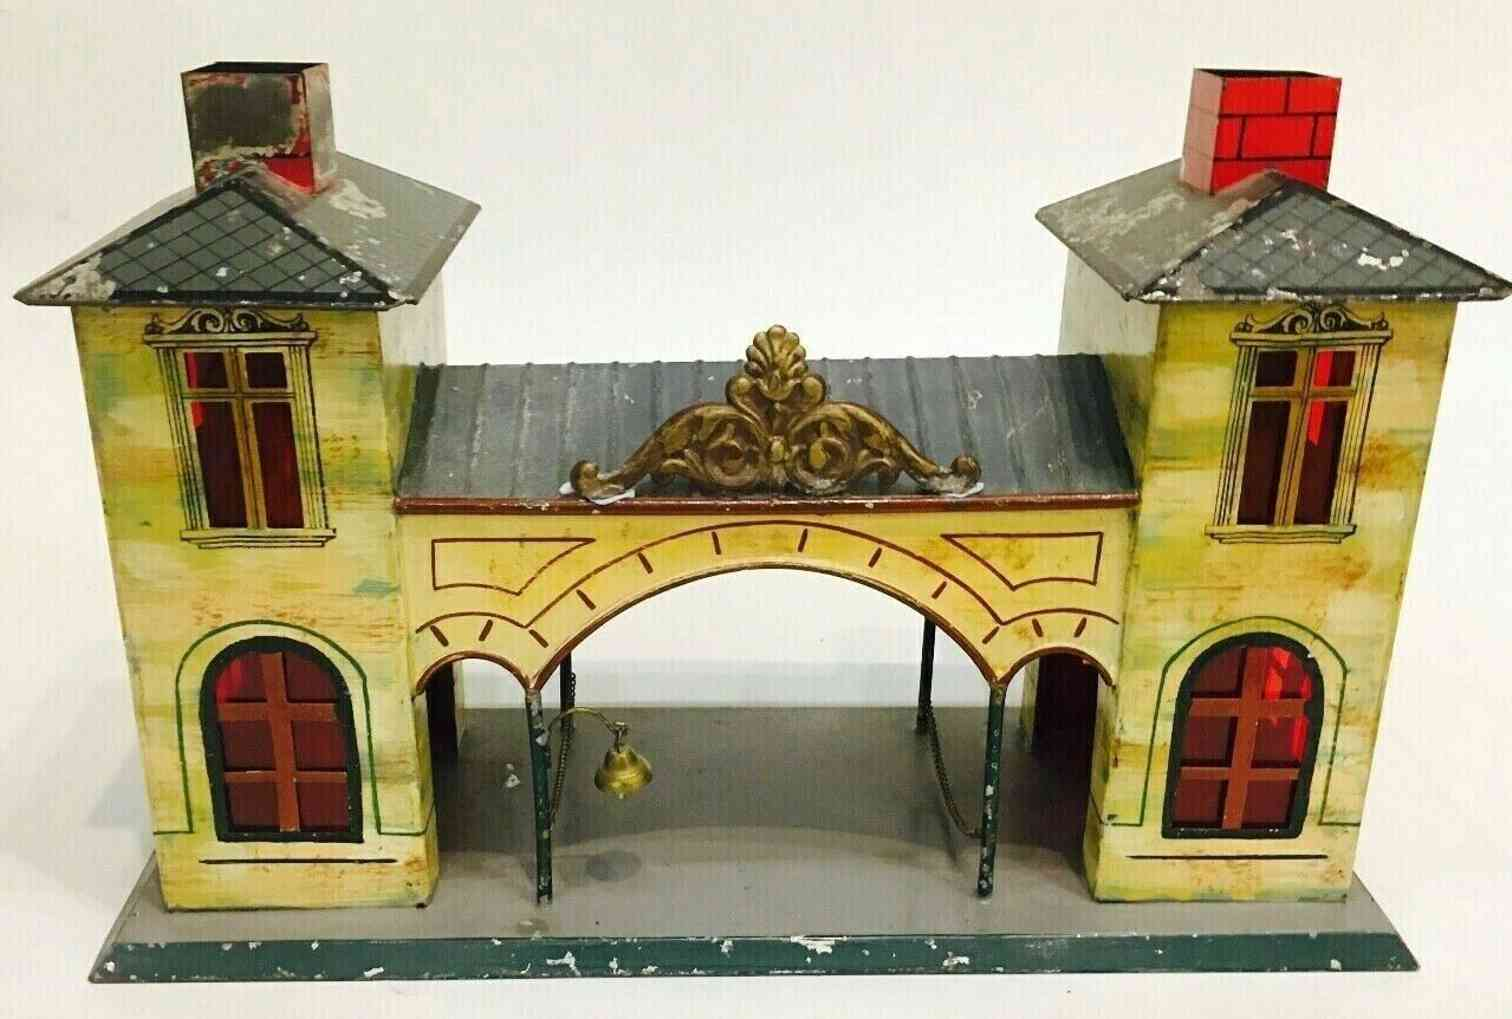 bing 8342/1 toy railway station two side buildings middle passage